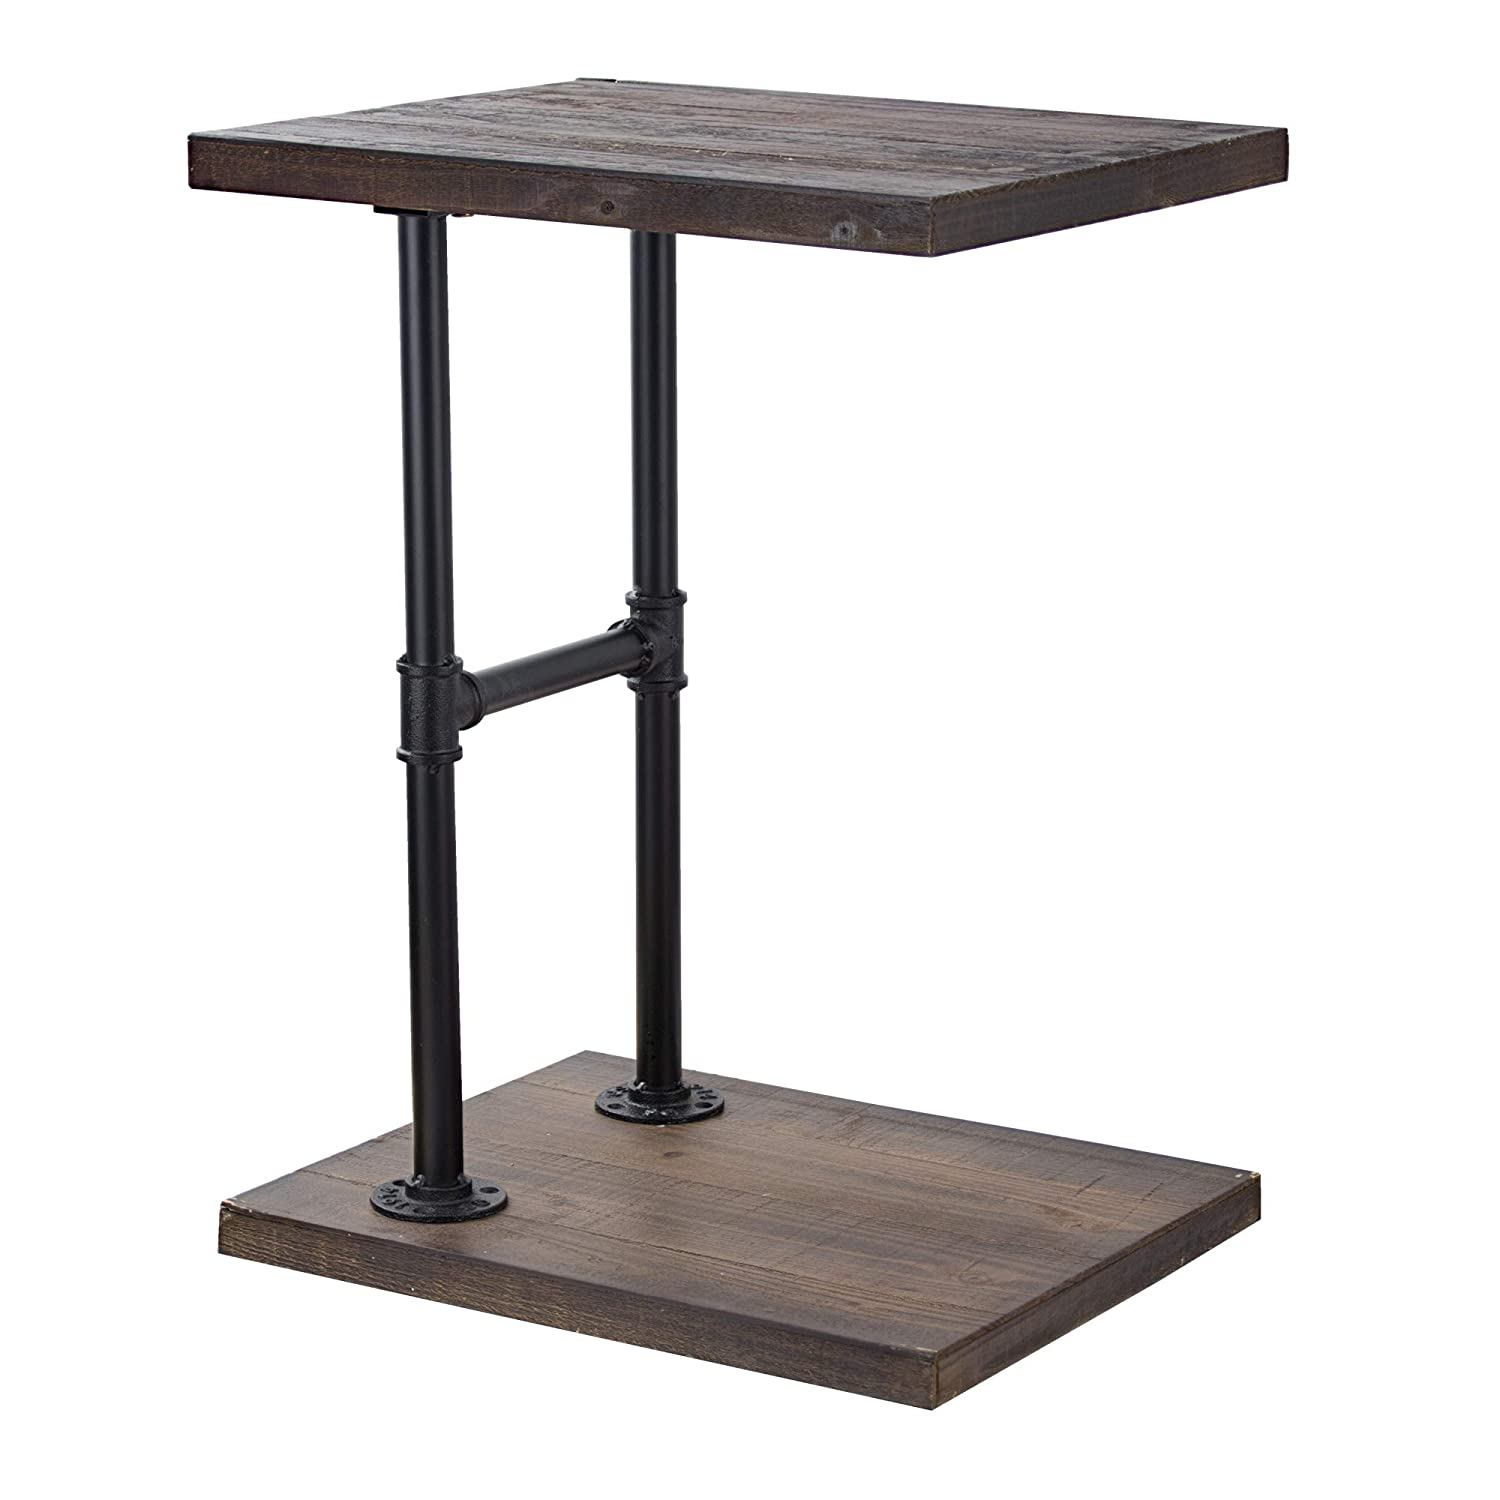 American Art Decor Wood and Metal C Style End Side Accent Bedside Table – Farmhouse Decor Furniture